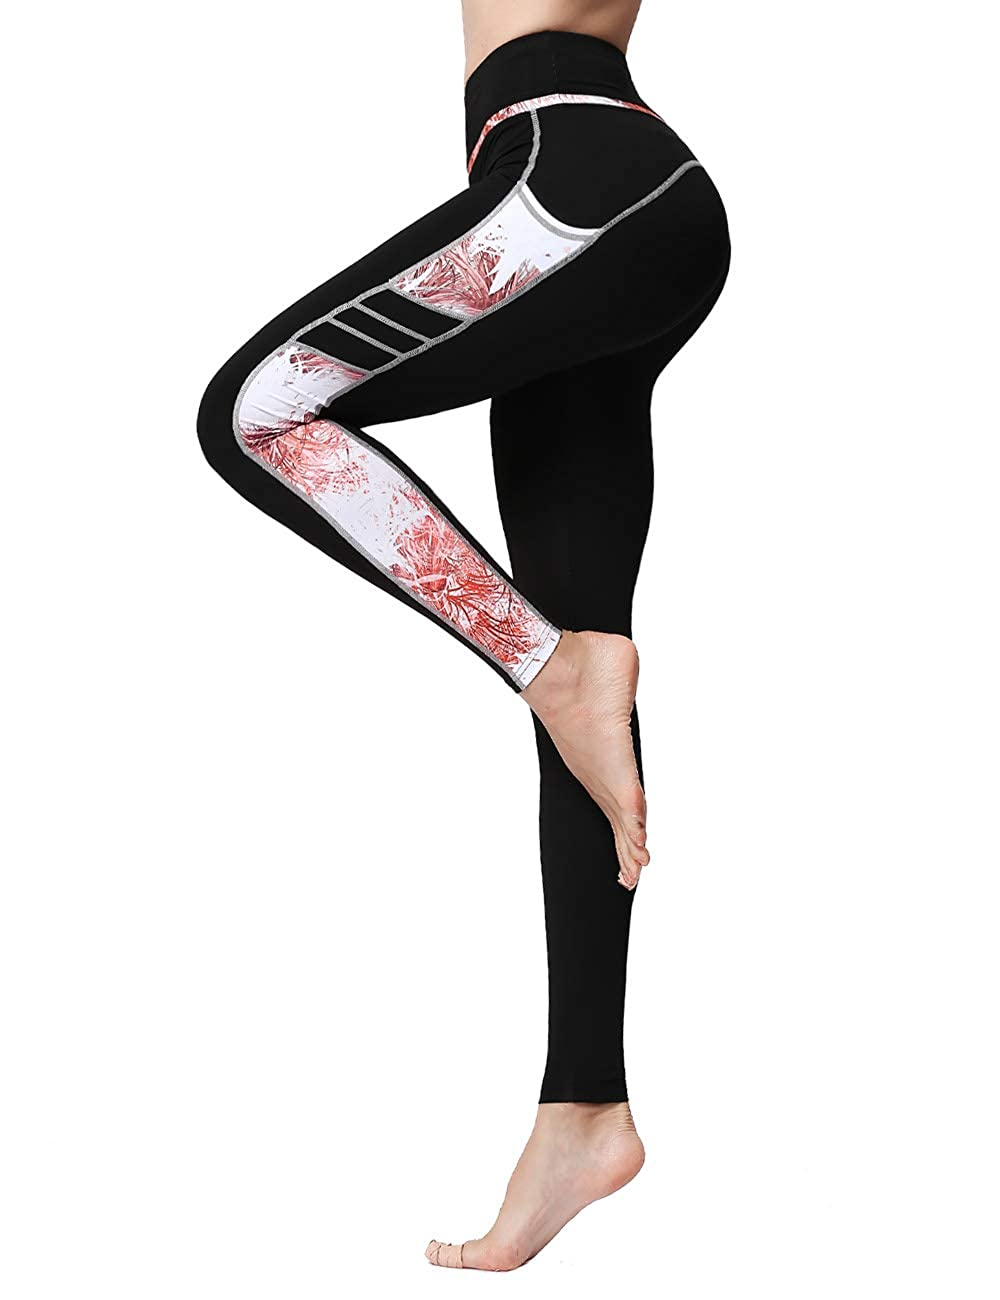 KSEERBABALL Womens High Waist Yoga Pants Tummy Control Workout Running Pants Legging Full-Length Pants with Pocket